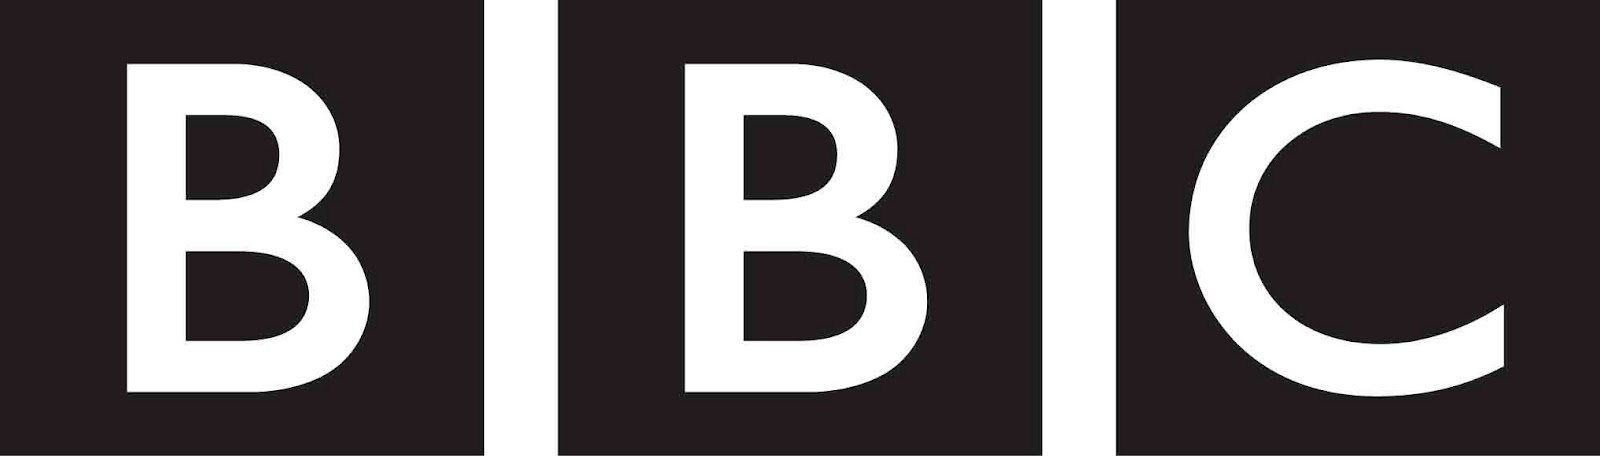 Everything About All Logos Bbc Logo Pictures